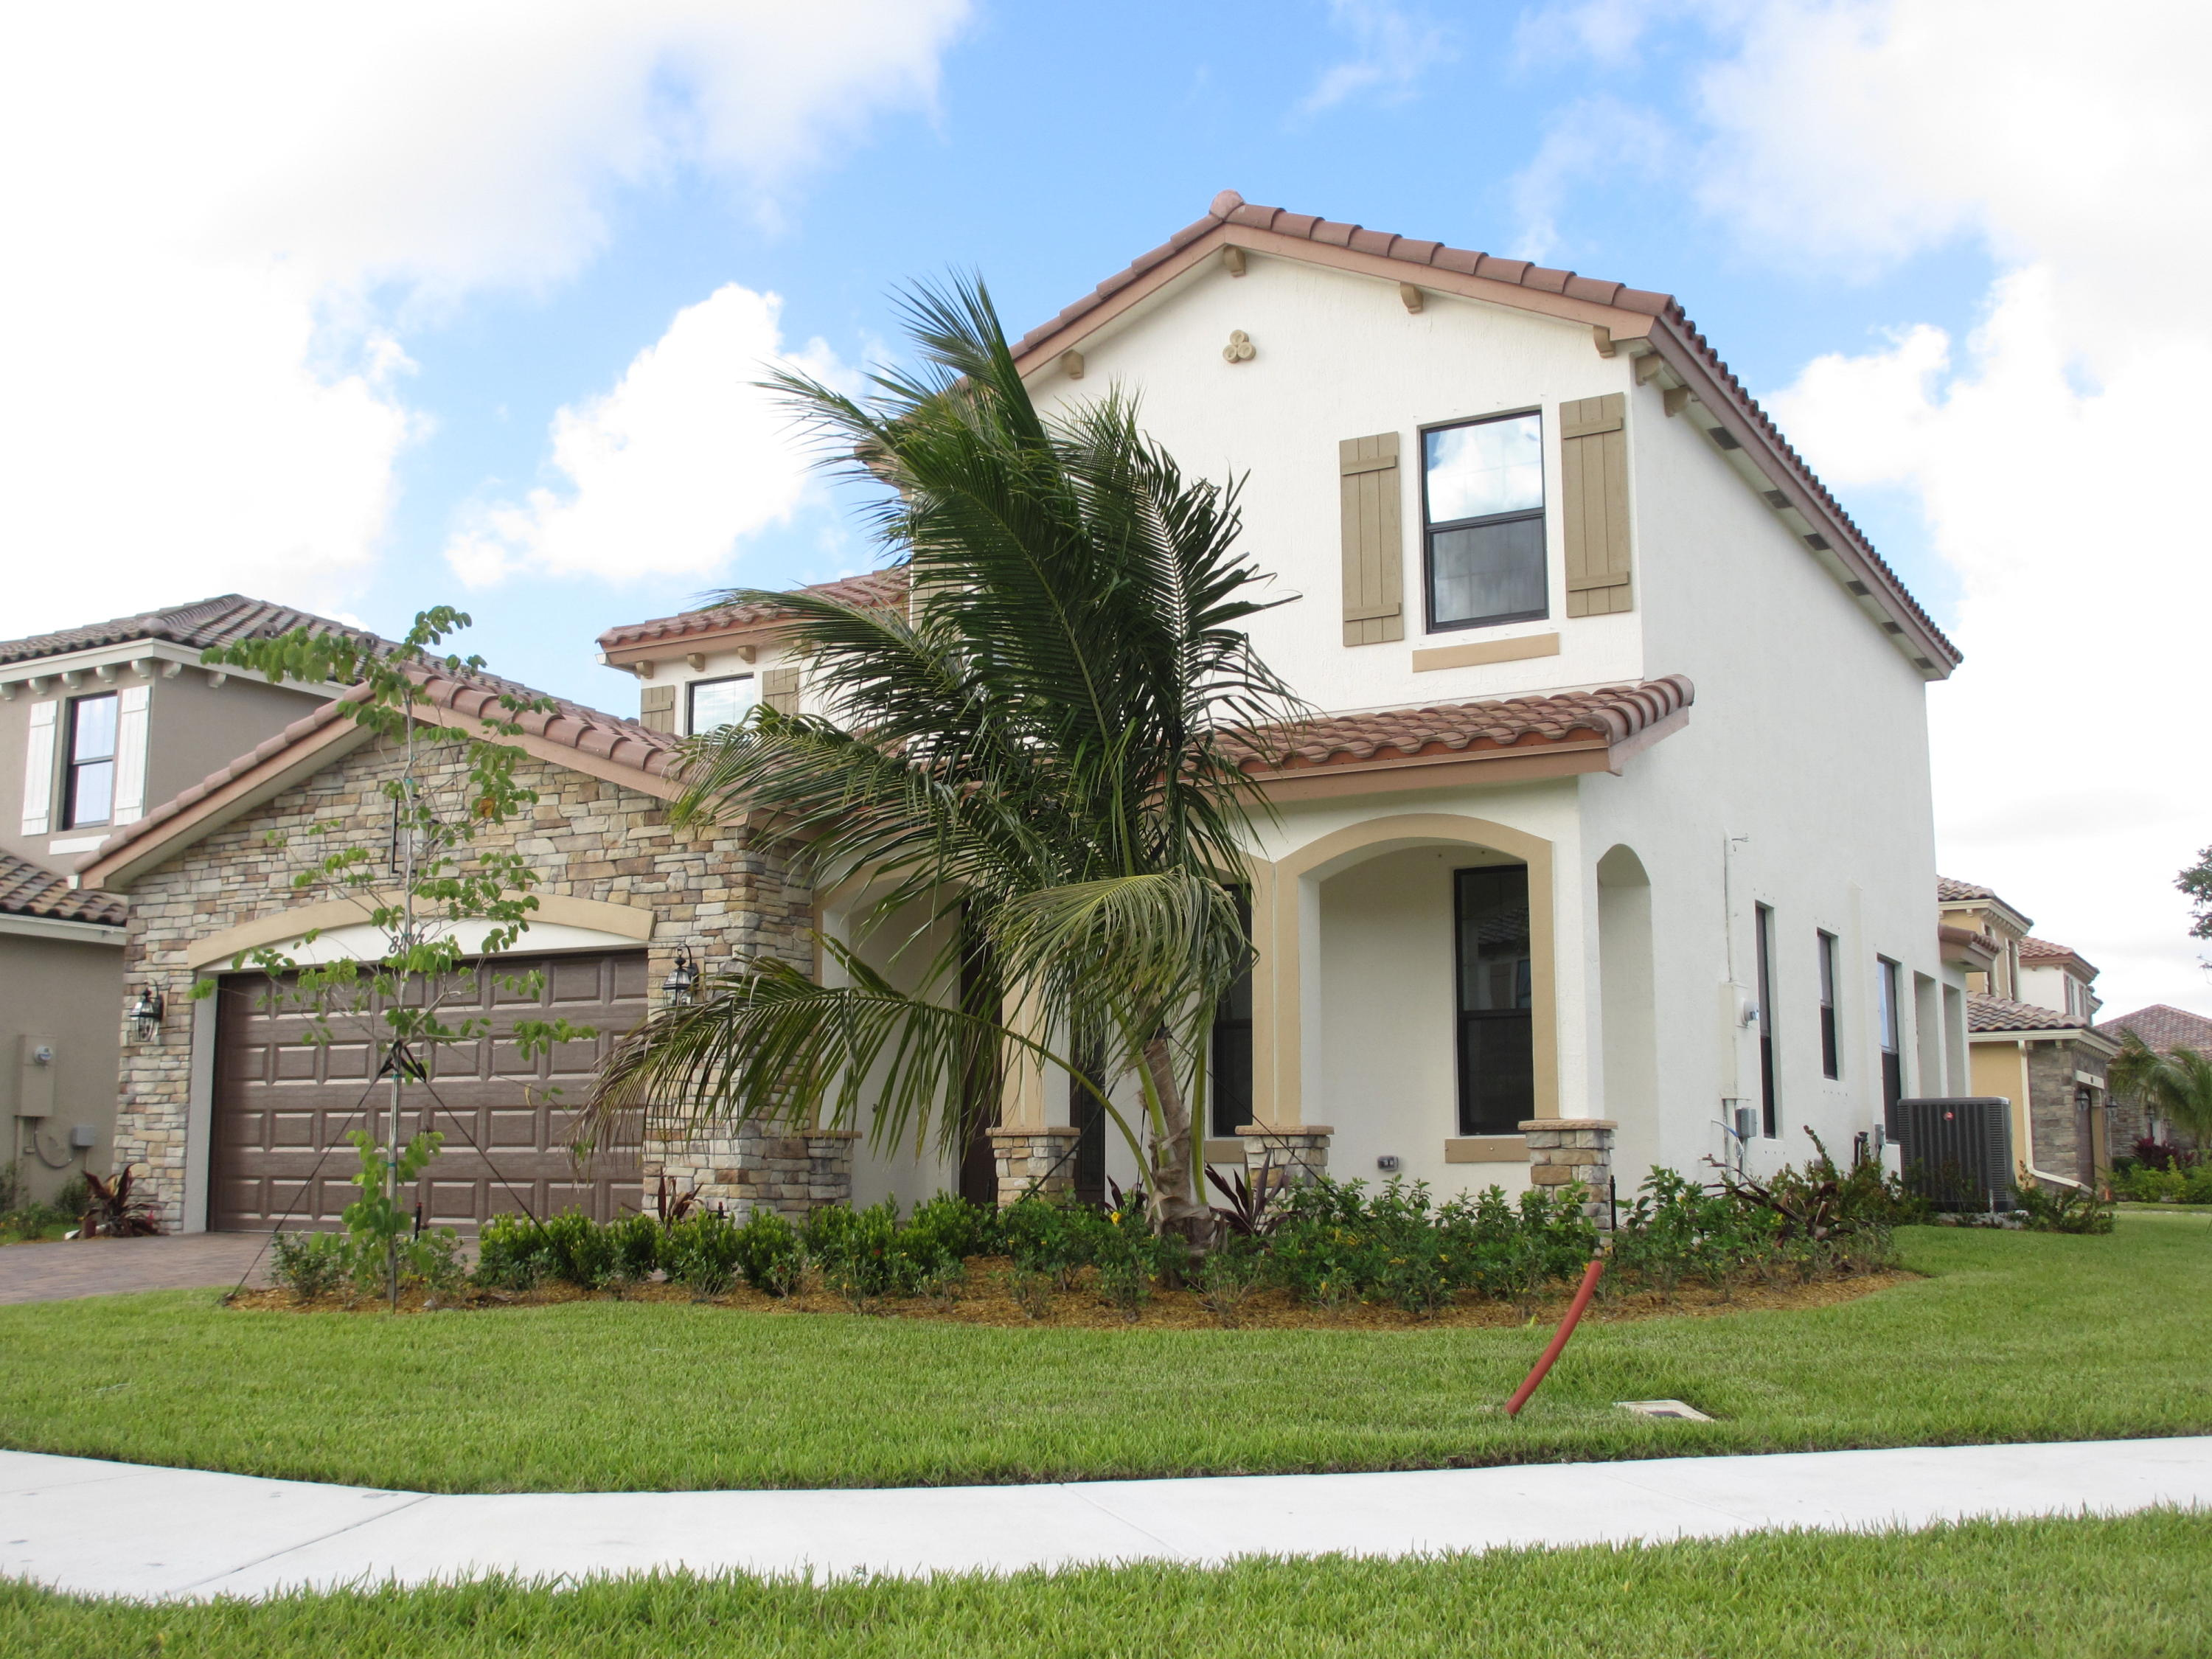 Lake Worth: Gulfstream Preserve - listed at 420,000 (8813 Sea Chase Dr)